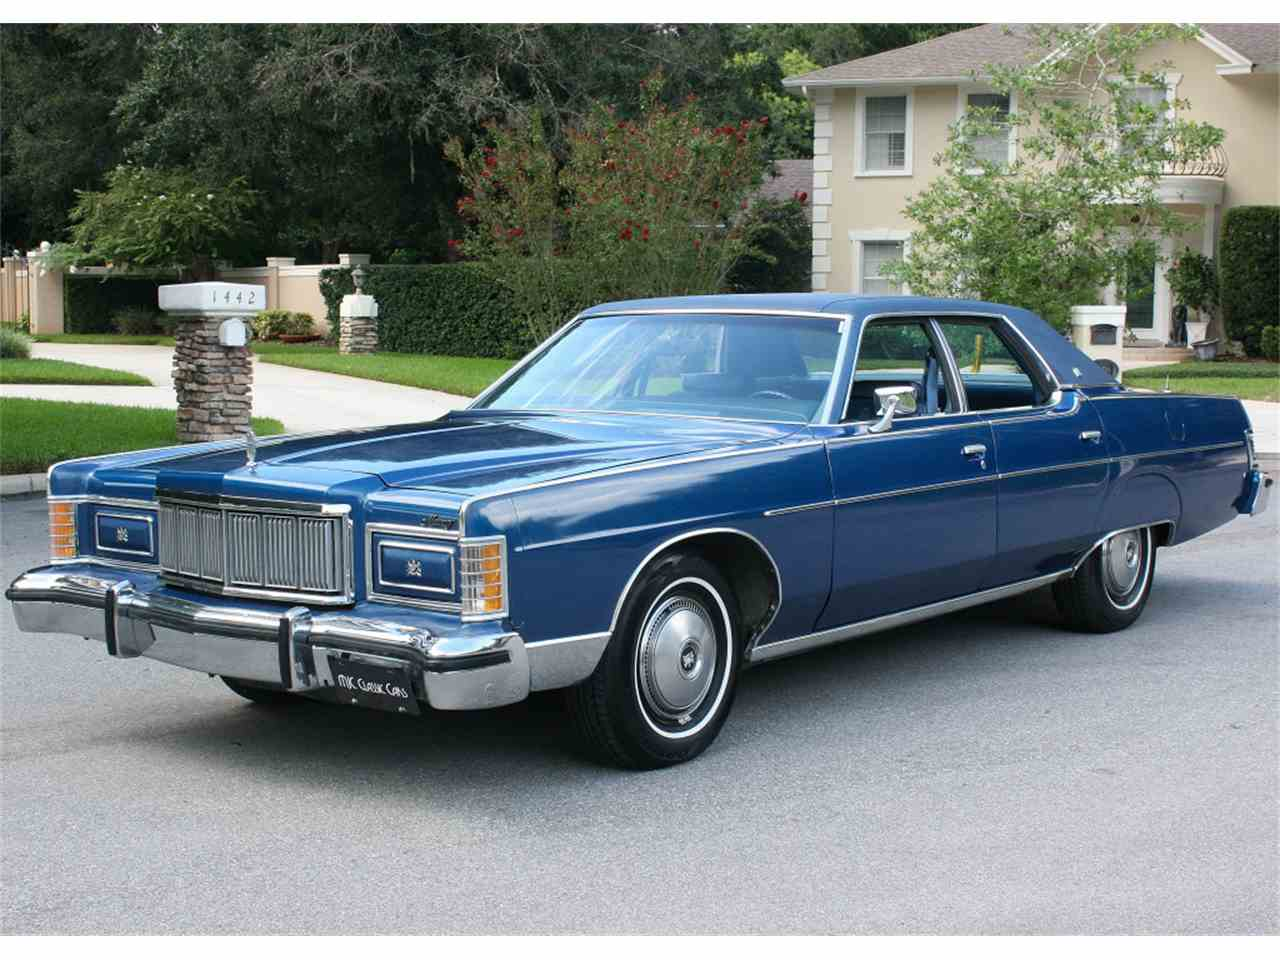 Large Picture of '77 Mercury Marquis located in Florida - $16,500.00 - JAVE